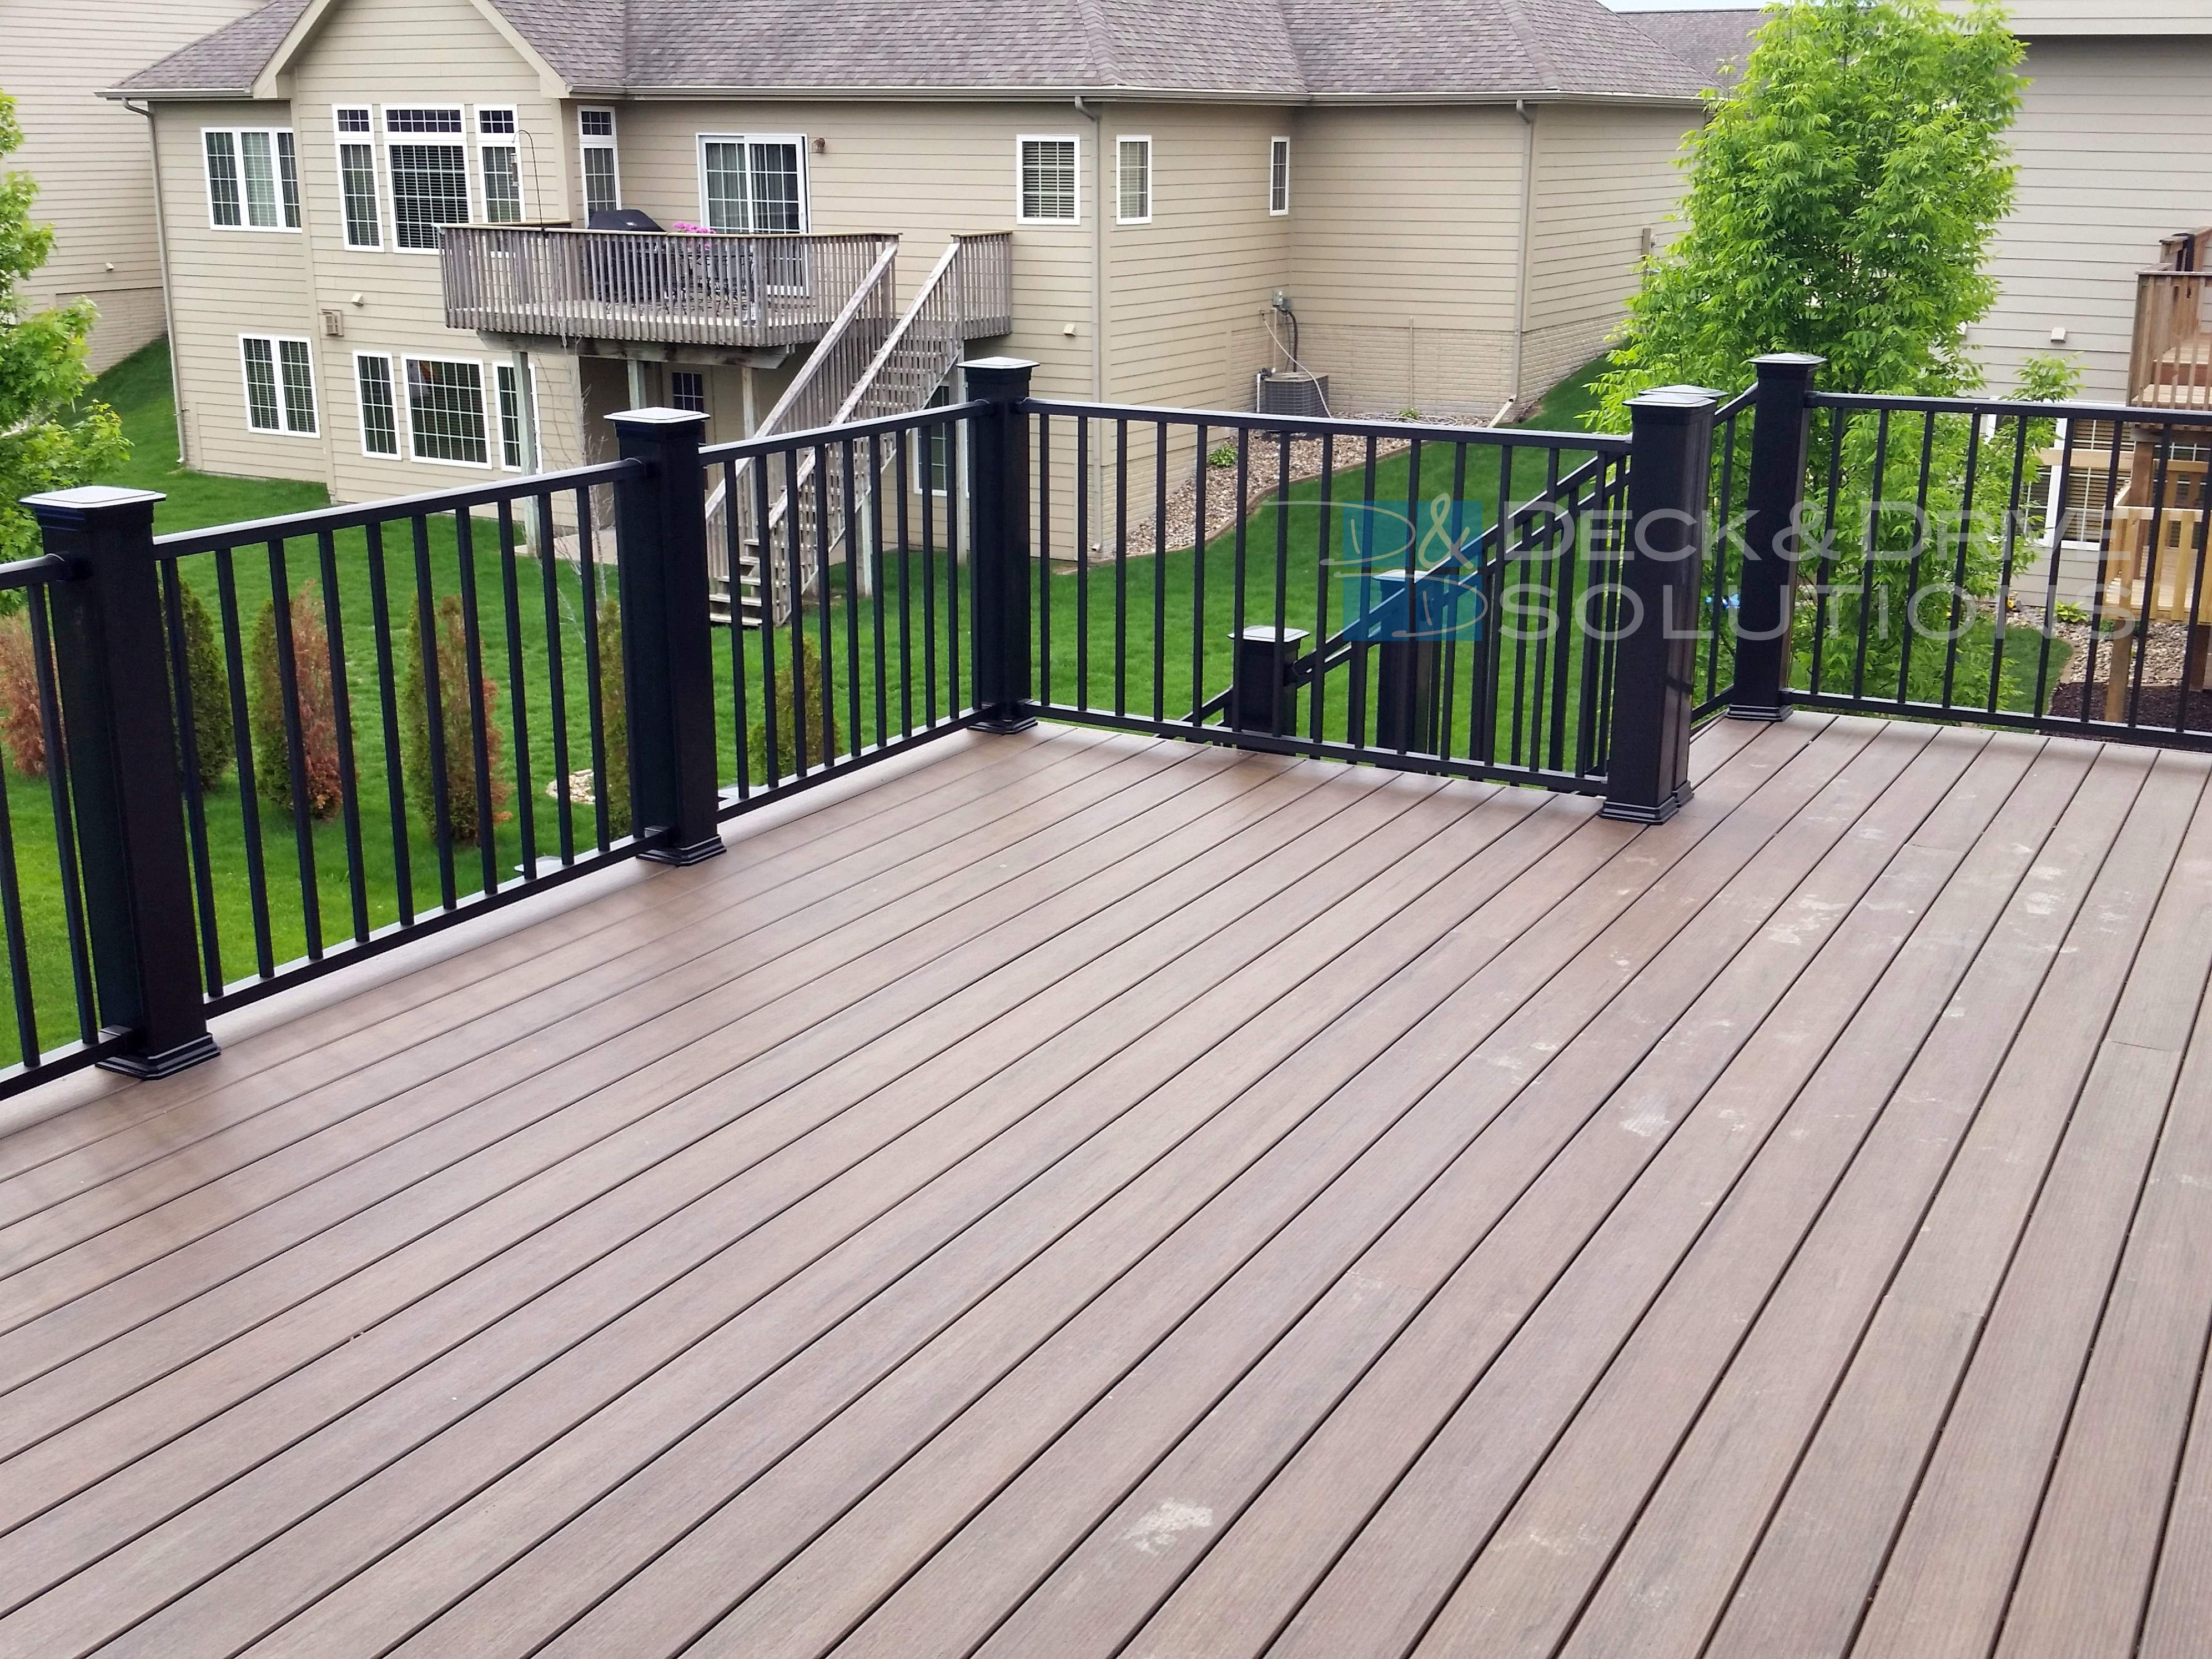 New Timbertech S Legacy Decking Mocha Des Moines Deck